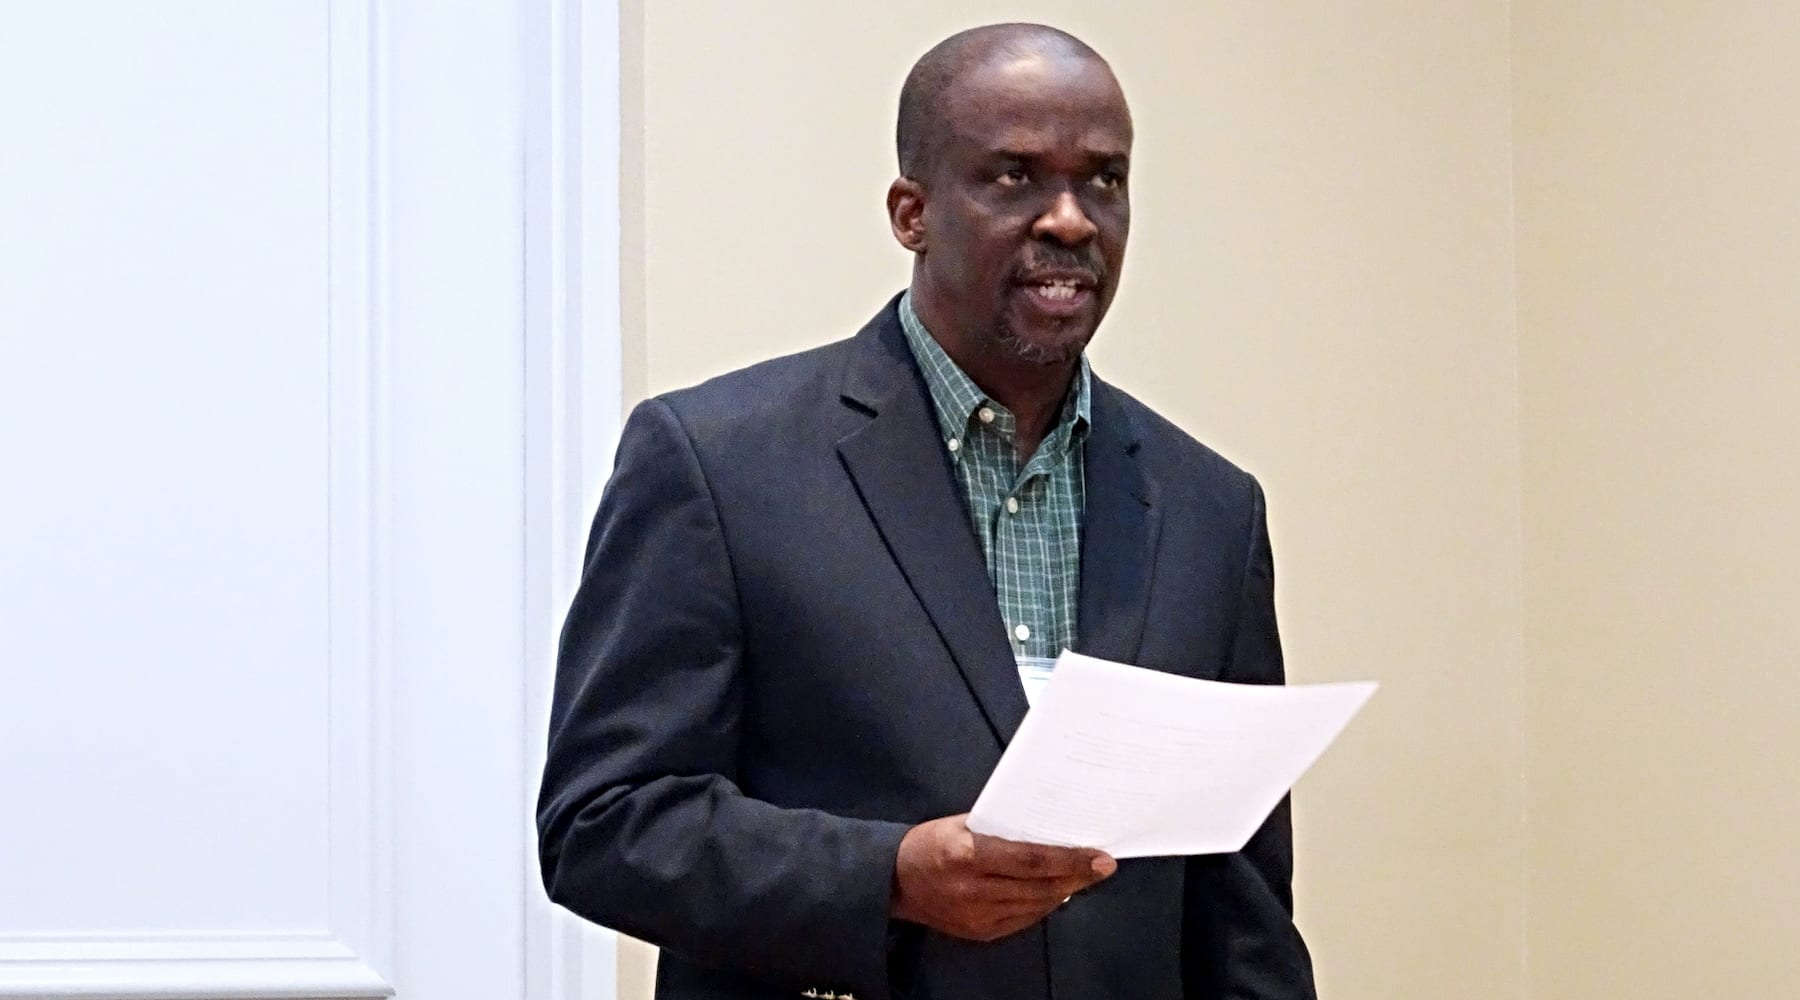 Reparations Talk Emerges During Global Baptist Meeting